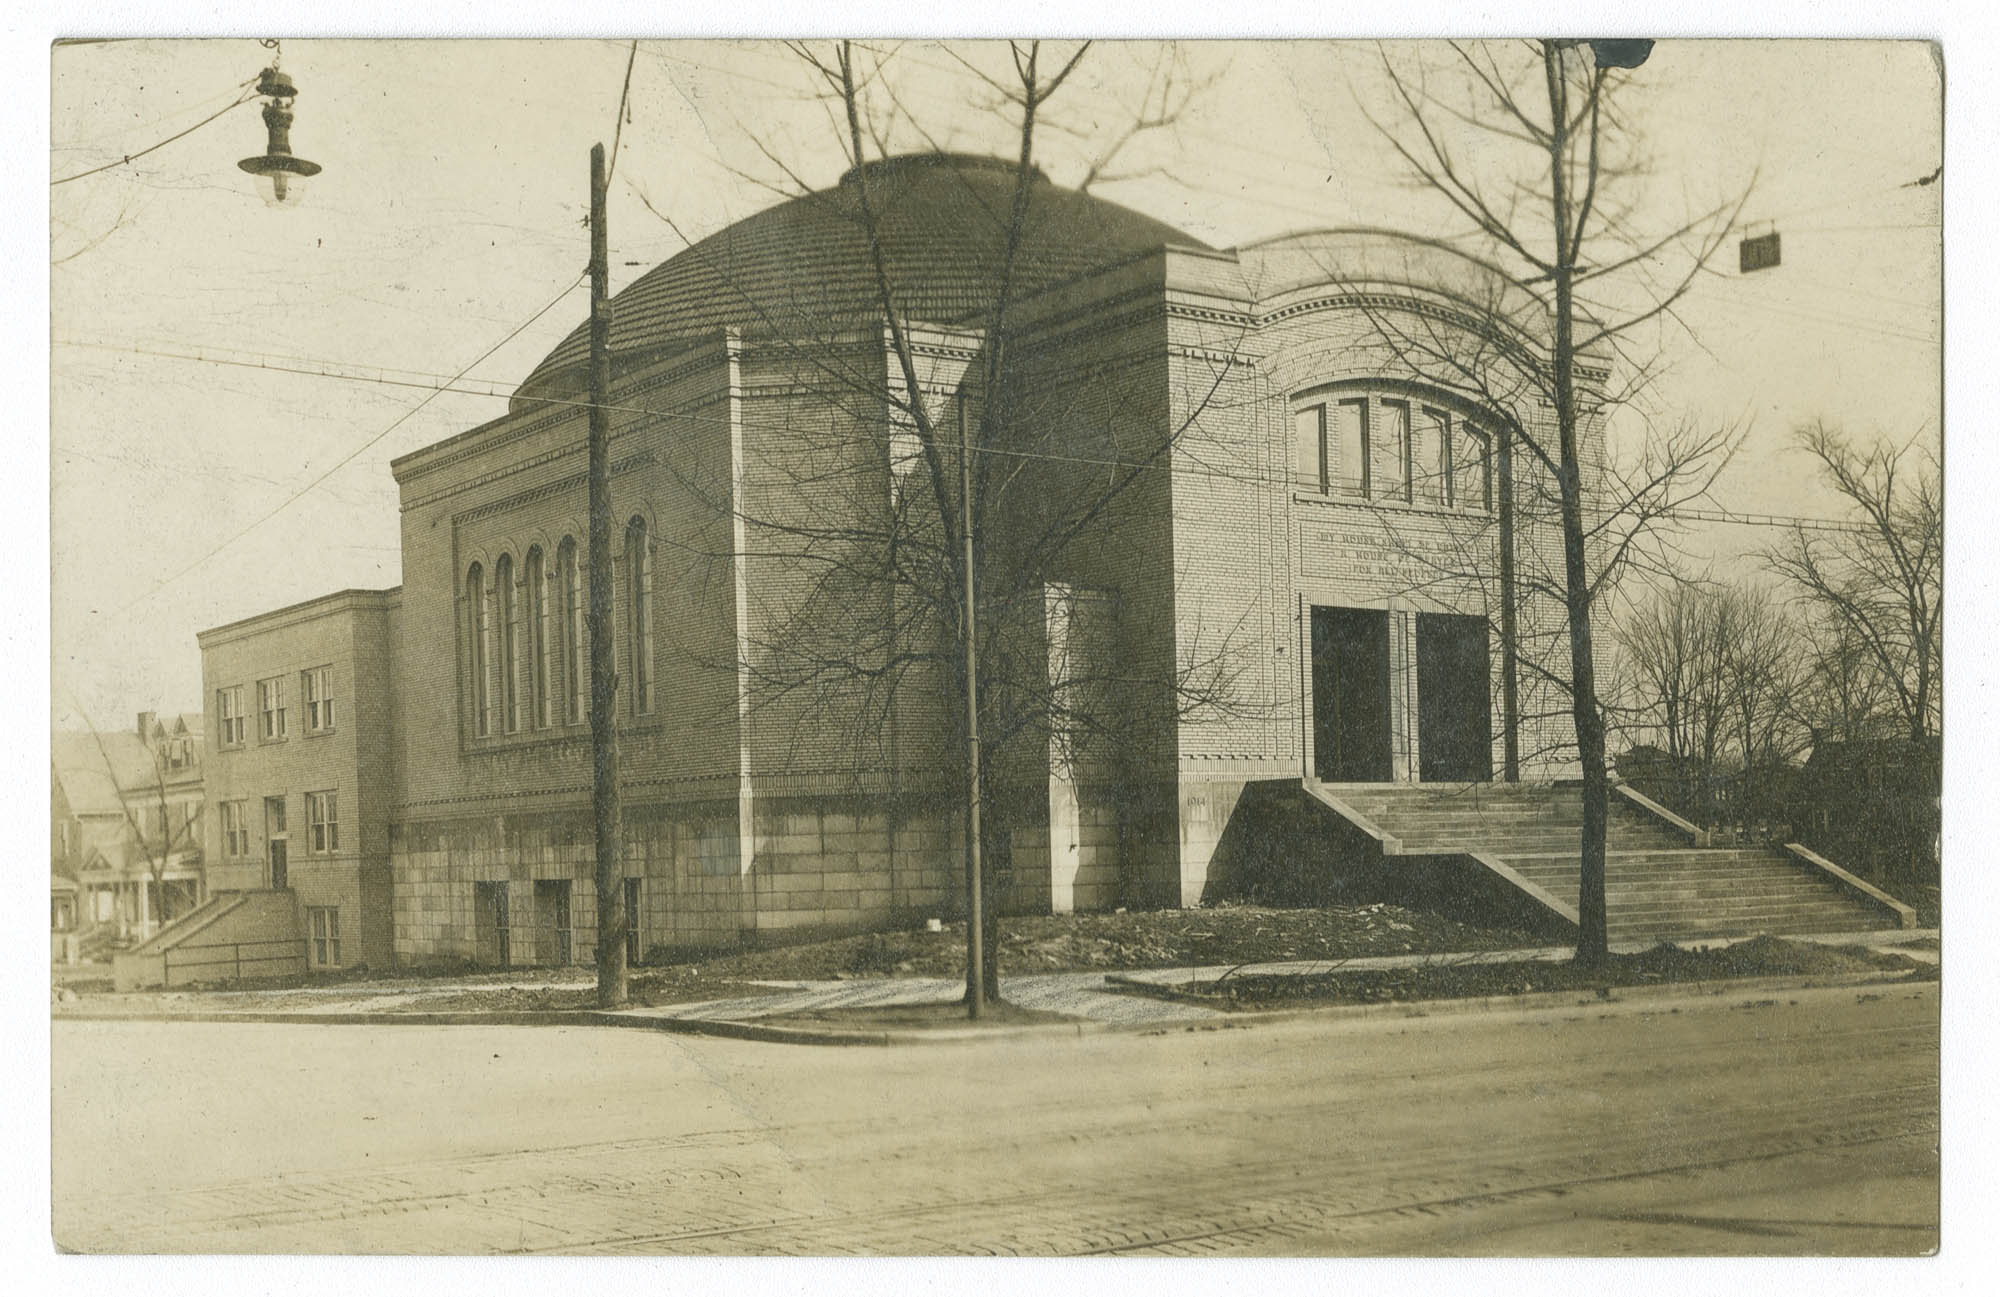 [Rodef Sholom Temple, Youngstown, Ohio]